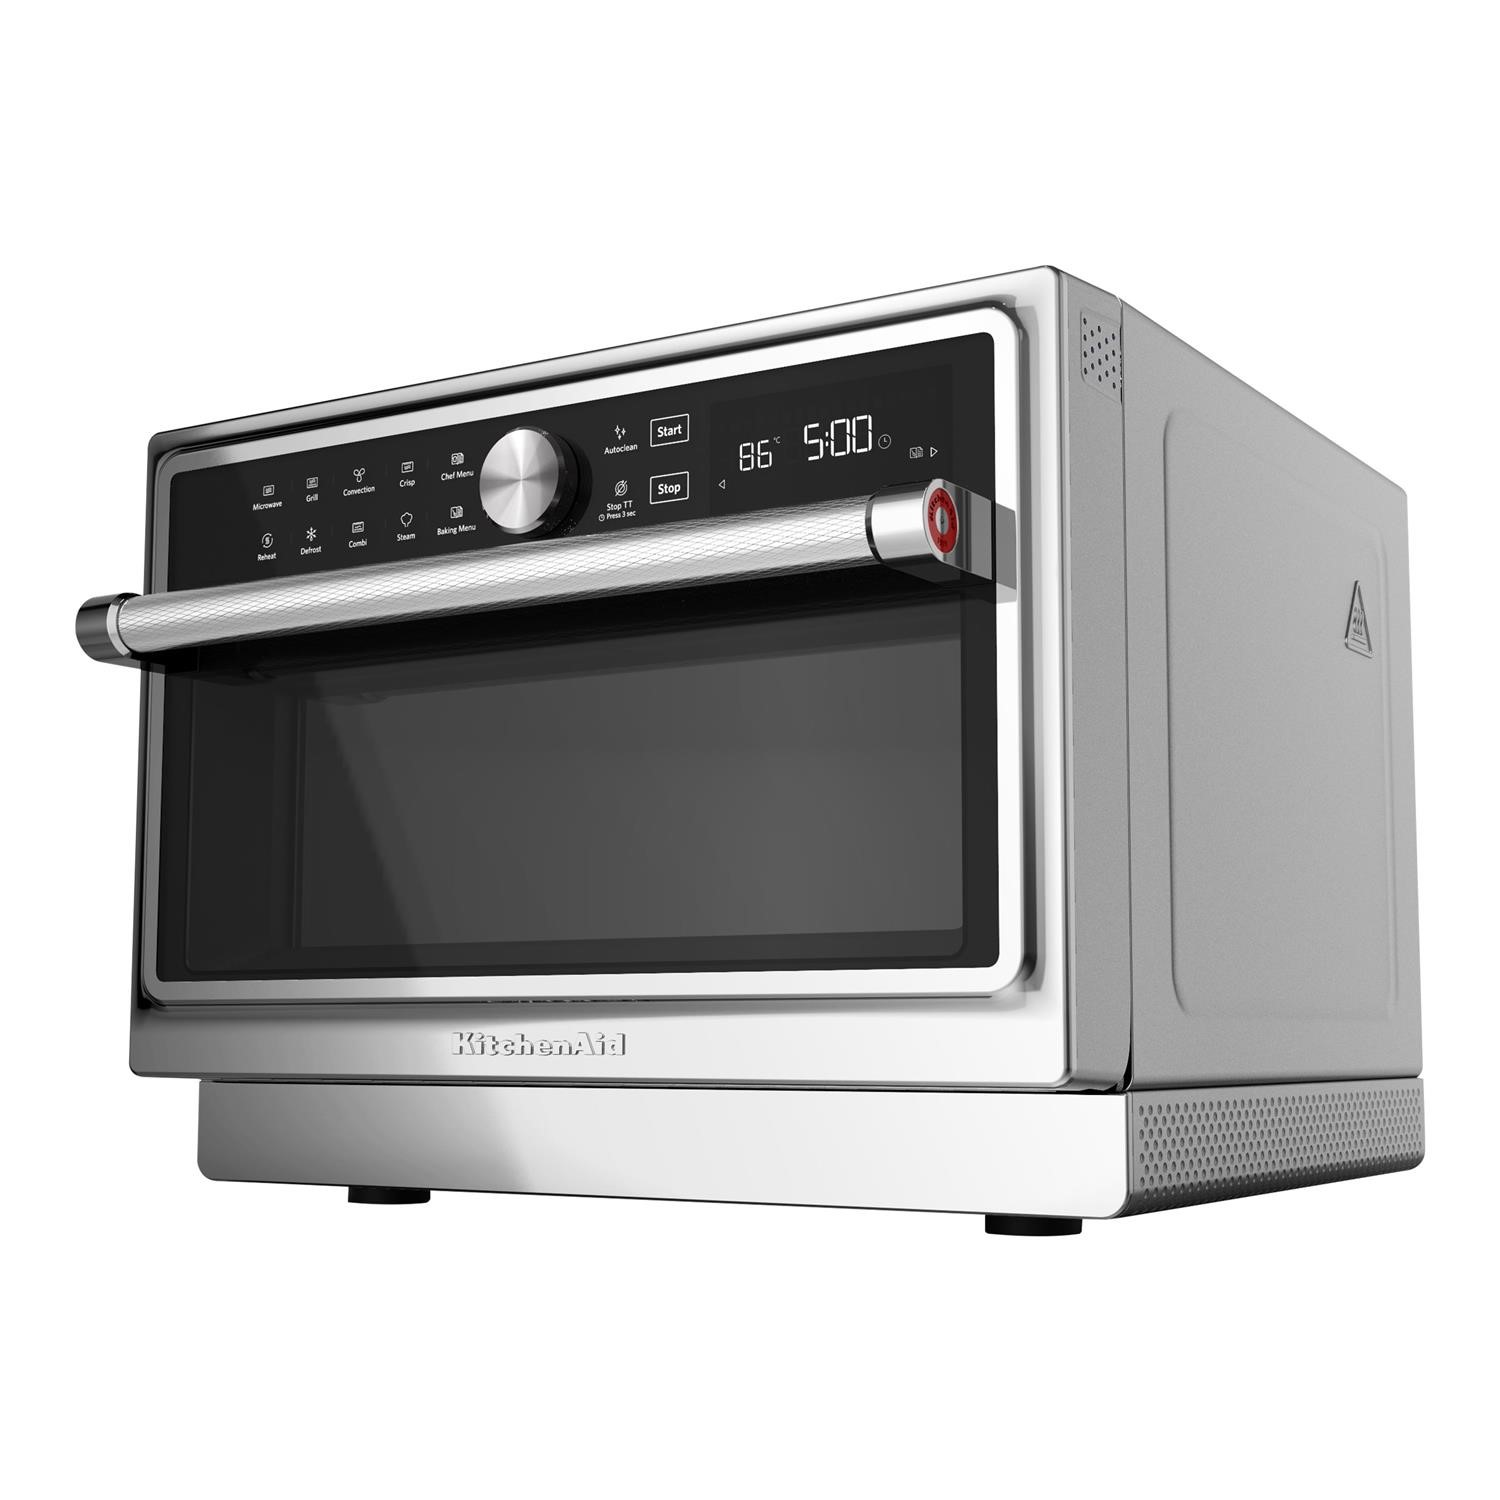 kitchenaid kmqfx33910 33l freestanding combination microwave oven stainless steel